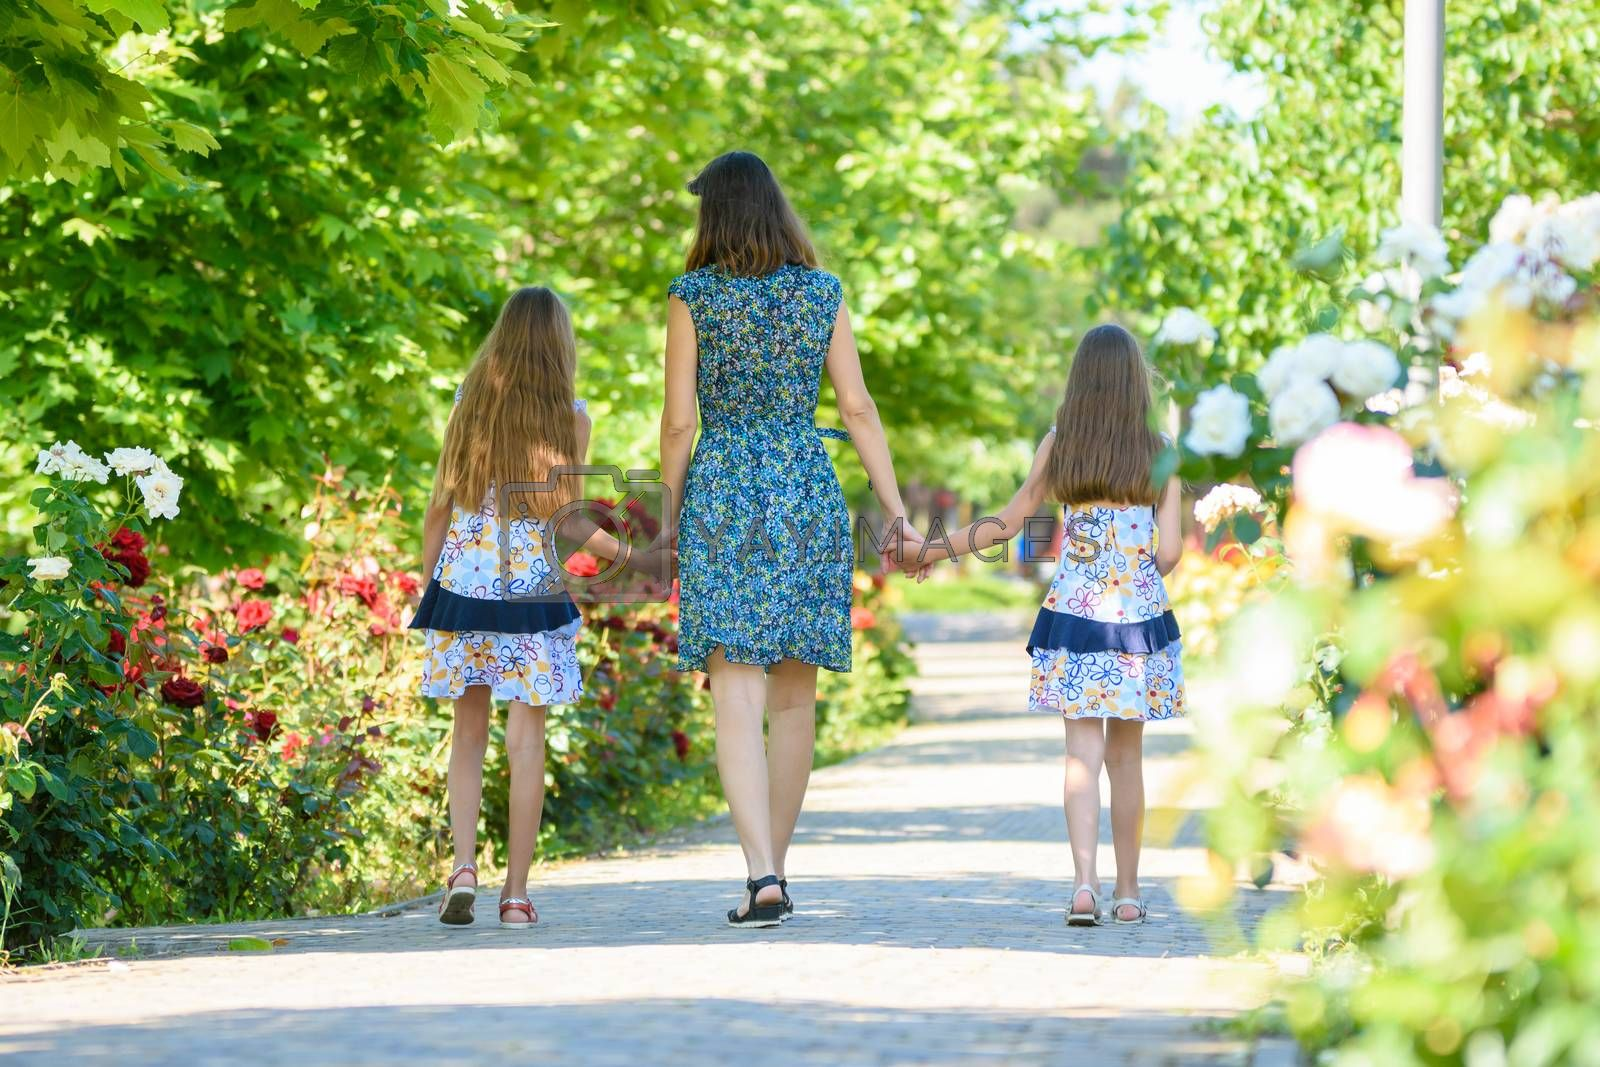 Mom walks down the path in the flowering garden by the hand with her two daughters back in the frame